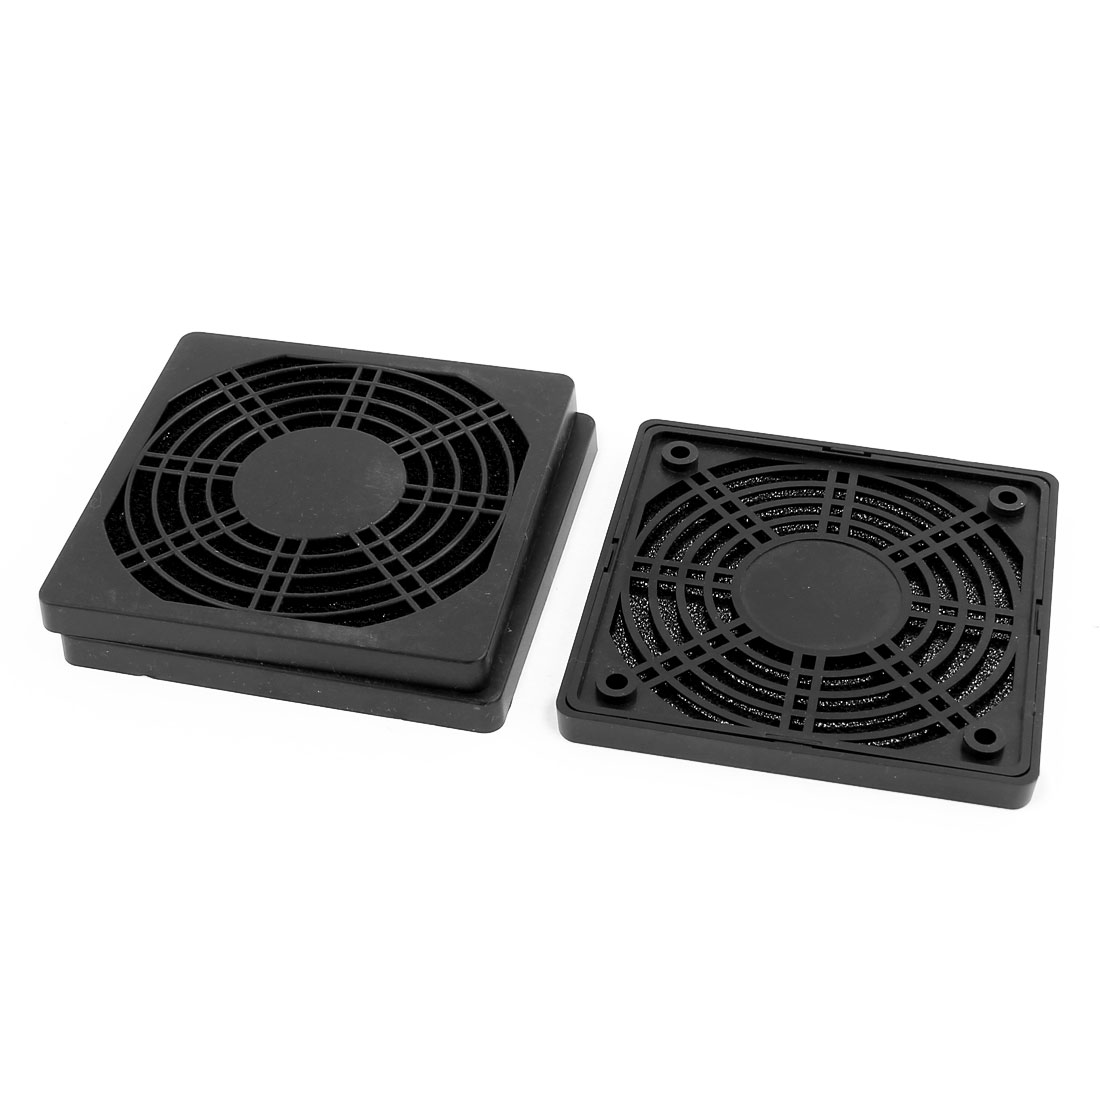 3pcs 115mm x 115mm Dustproof Case PC Computer Case Fan Dust Filter